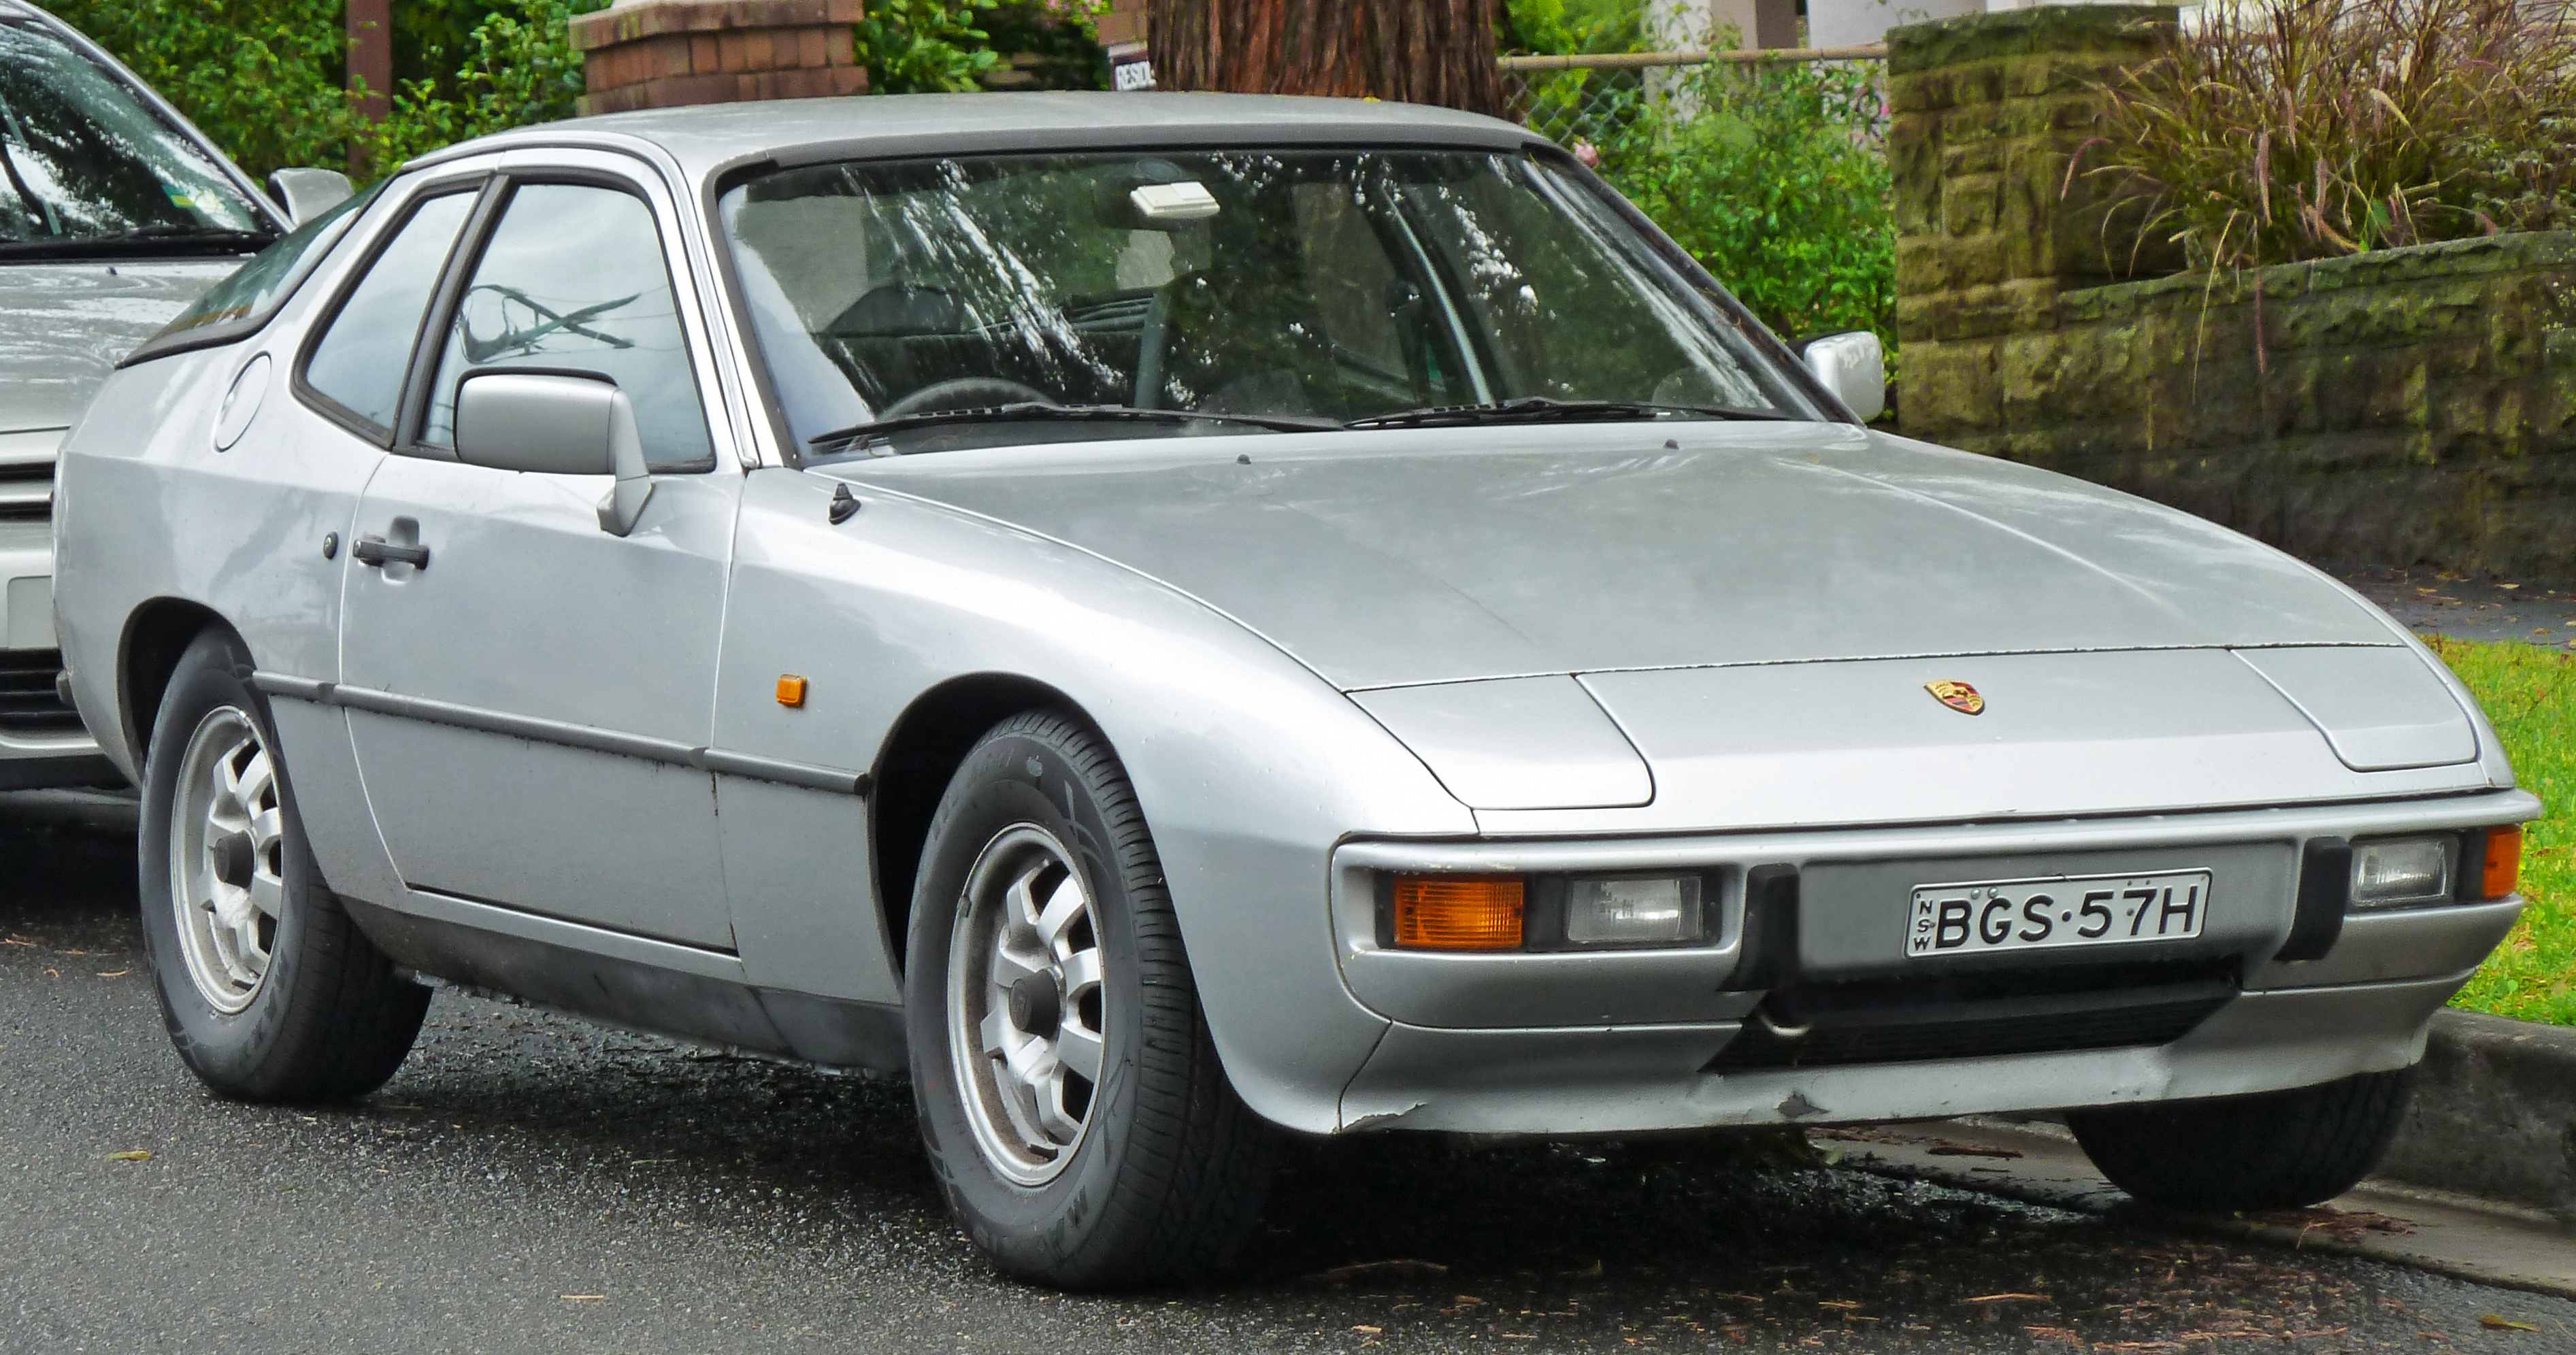 File:1977-1982 Porsche 924 coupe (2011-04-28) 01